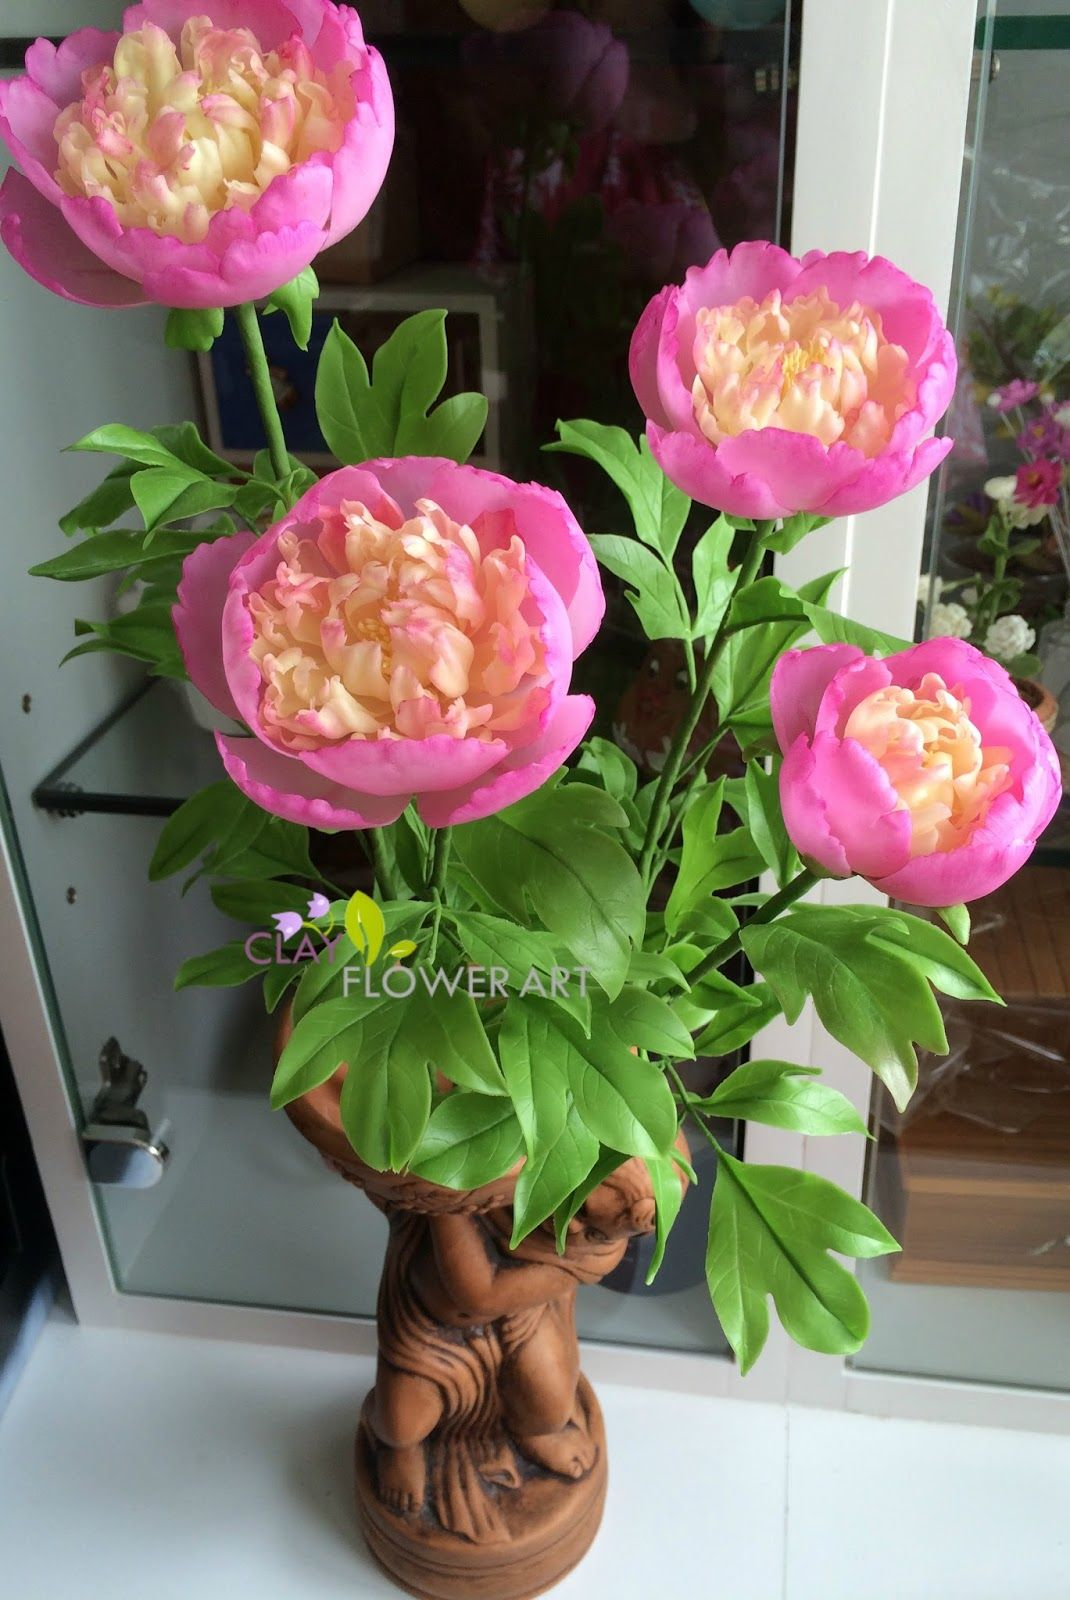 A blog about clay flower art, real-looking flowers made out of Thai Clay and Japanese Luna Clay by Priya Nanthakumar, who lives in Bangkok, Thailand.